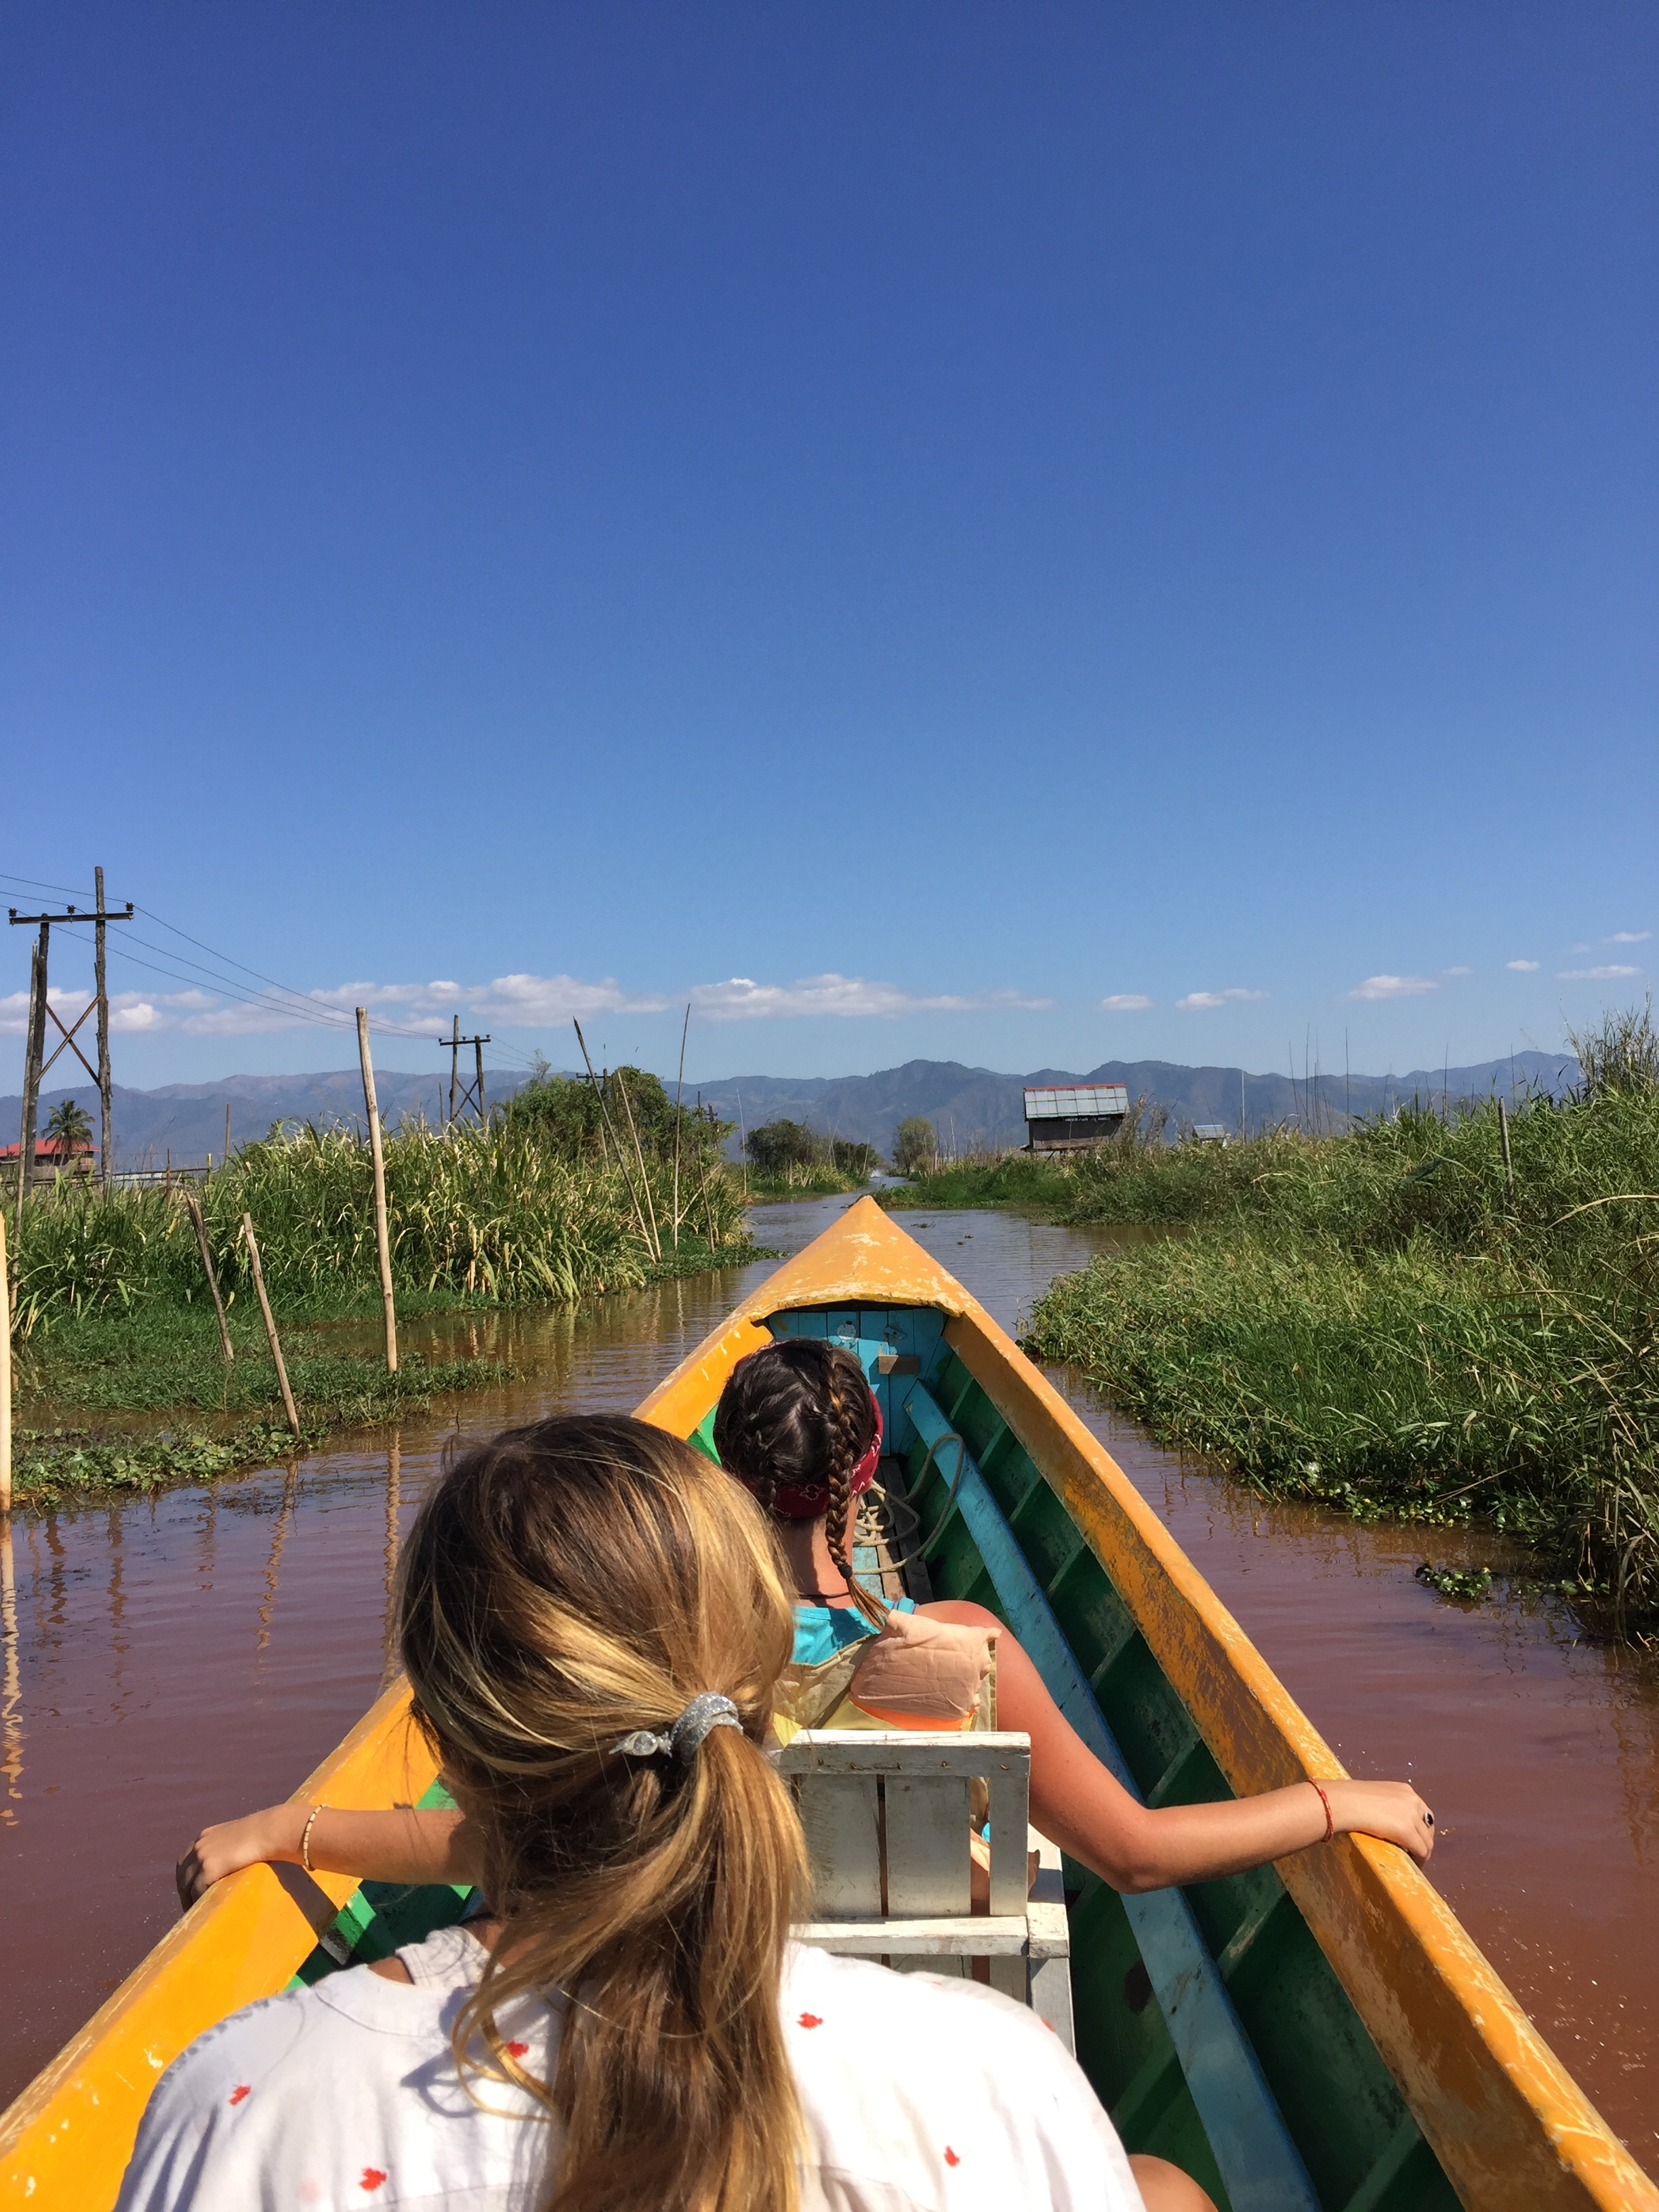 Our longboat tour of Inle Lake.